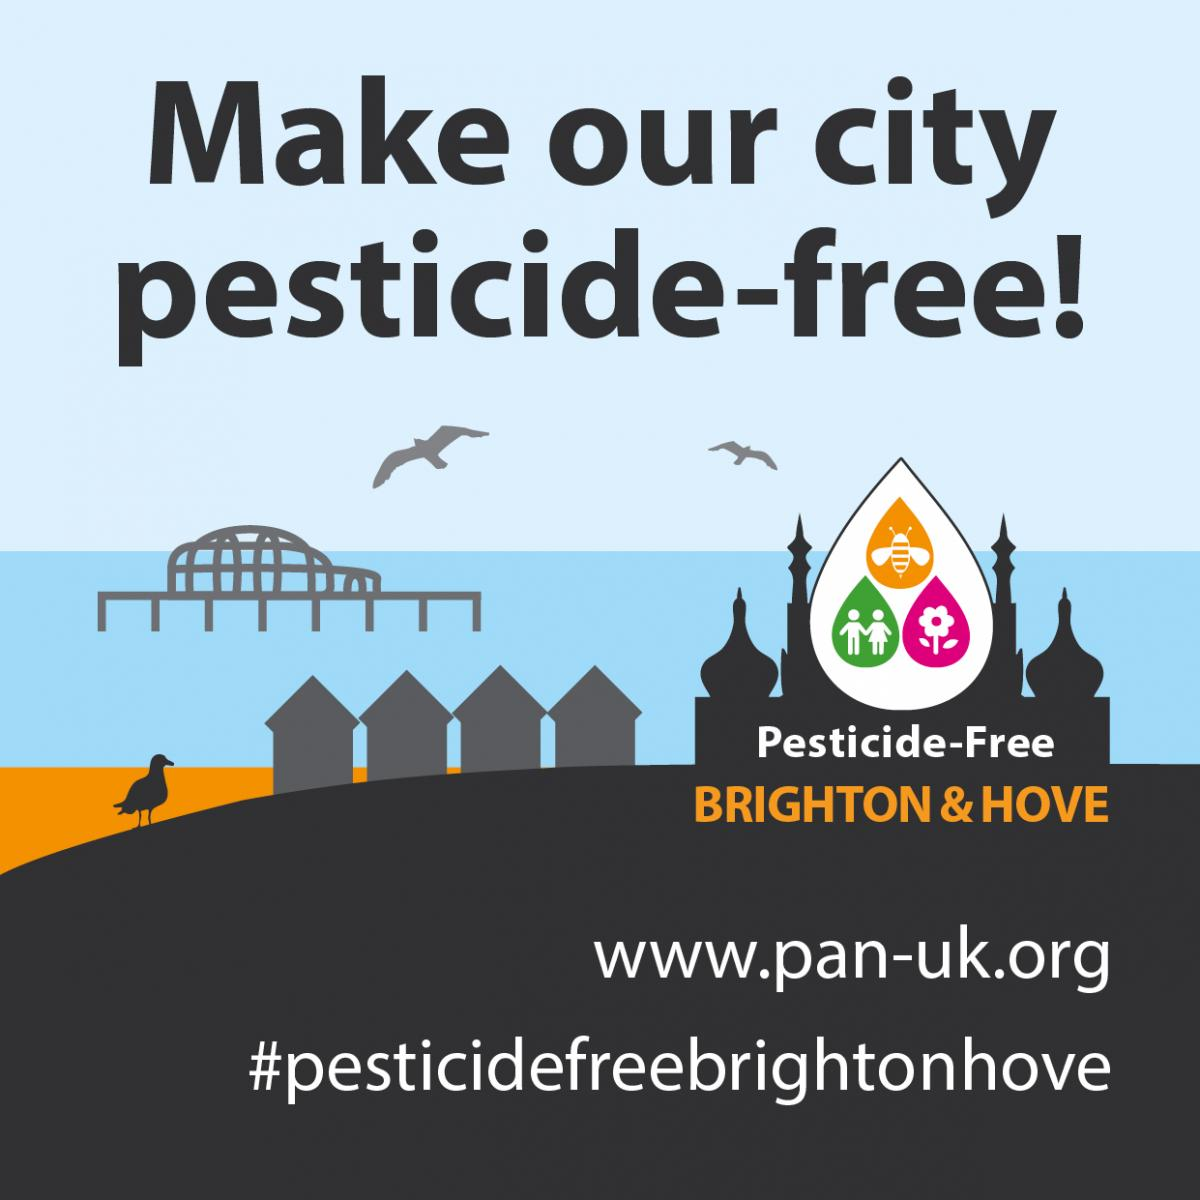 Pesticide Free graphic. Photo credit: PAN UK